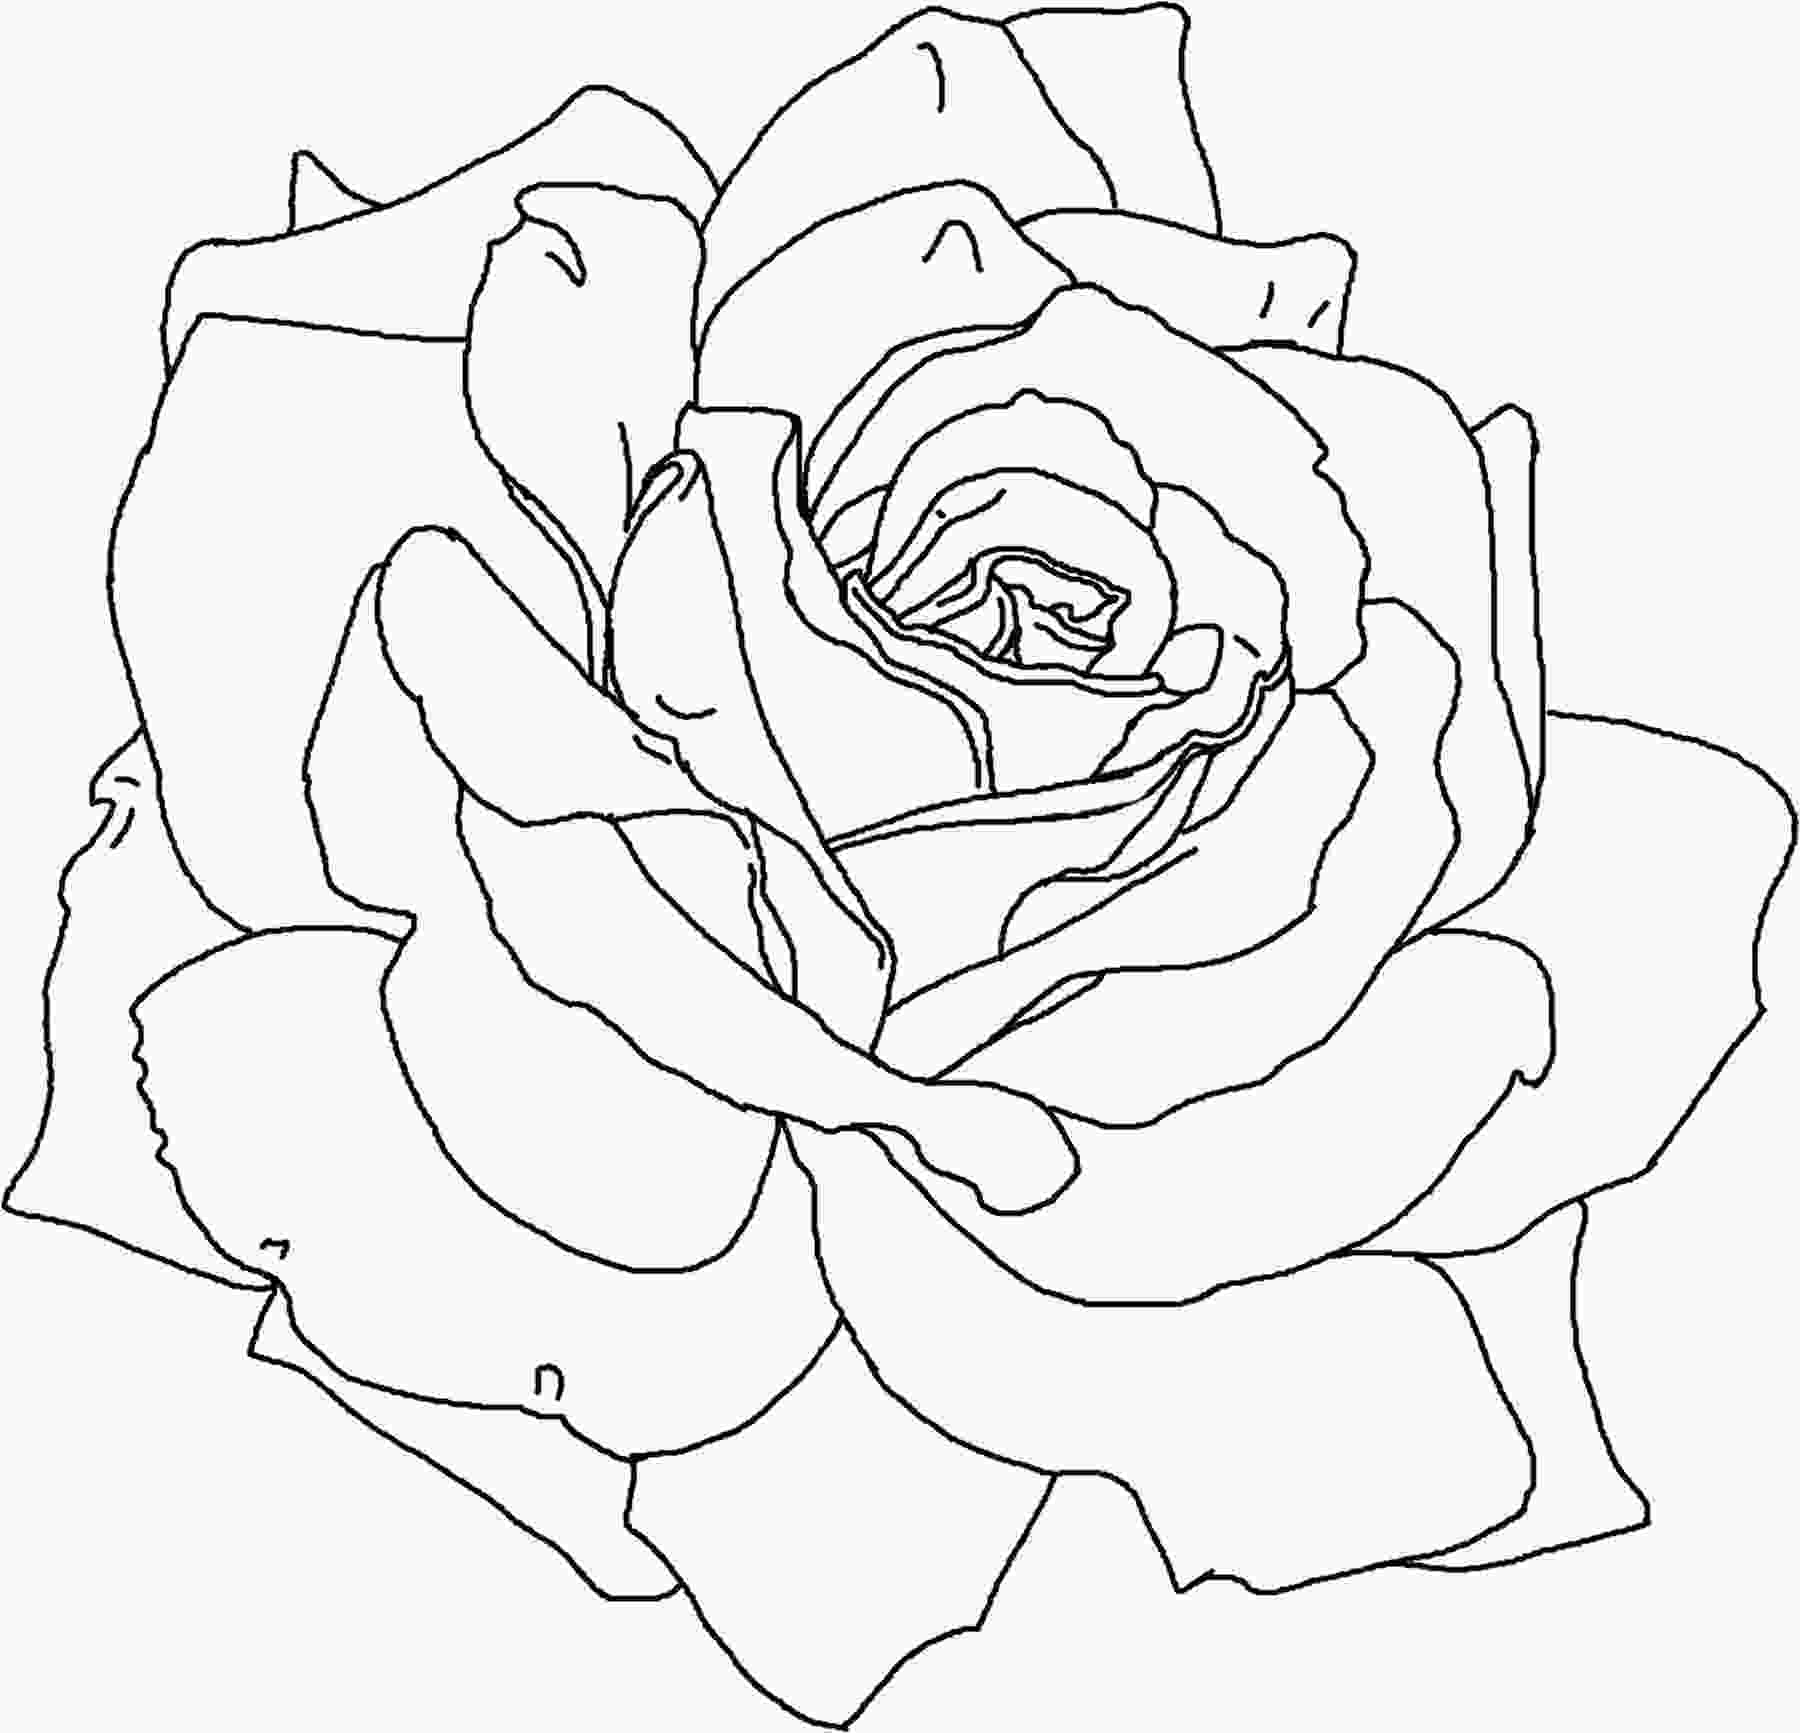 flower color page free printable flower coloring pages for kids best 6